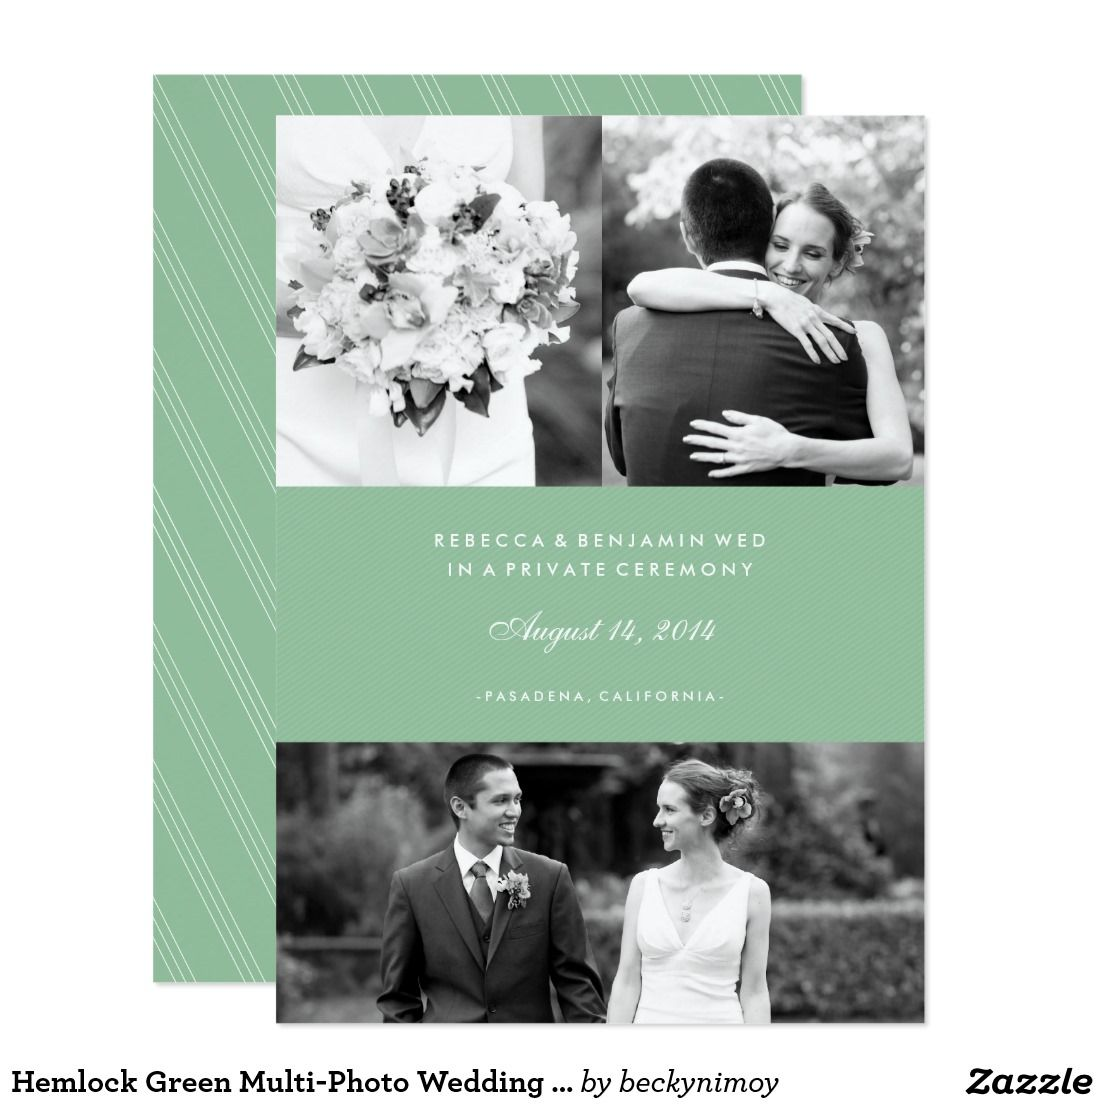 Hemlock green multi photo wedding announcement wedding hemlock green multi photo wedding announcement monicamarmolfo Image collections